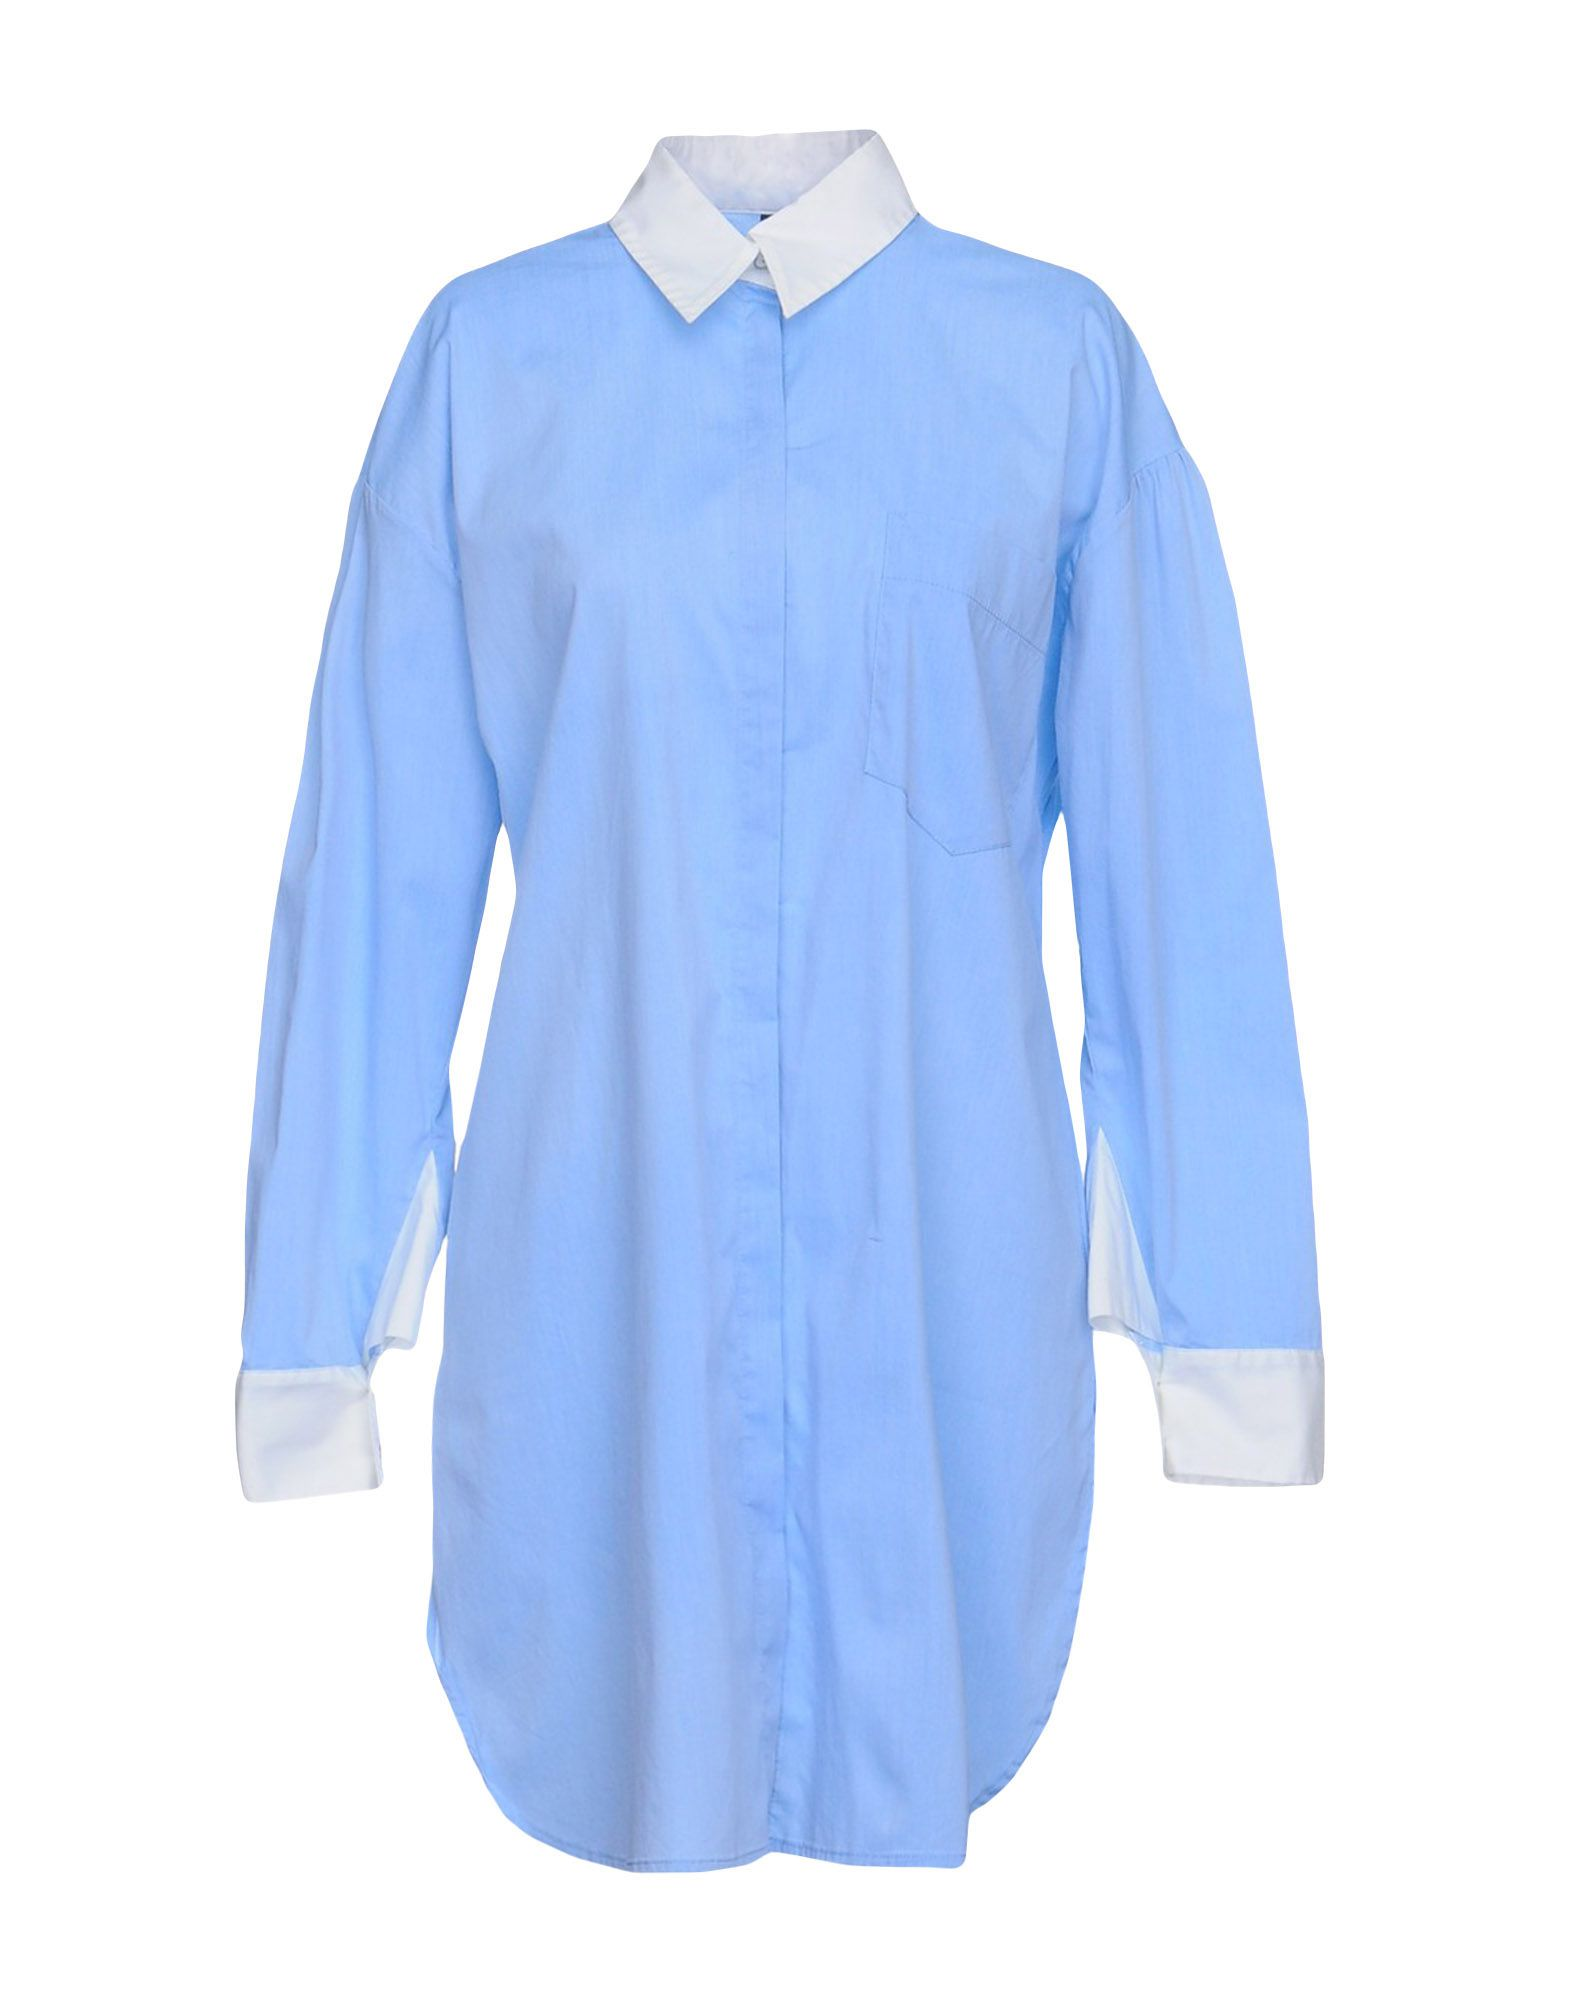 LIVIANA CONTI Shirt Dress in Sky Blue